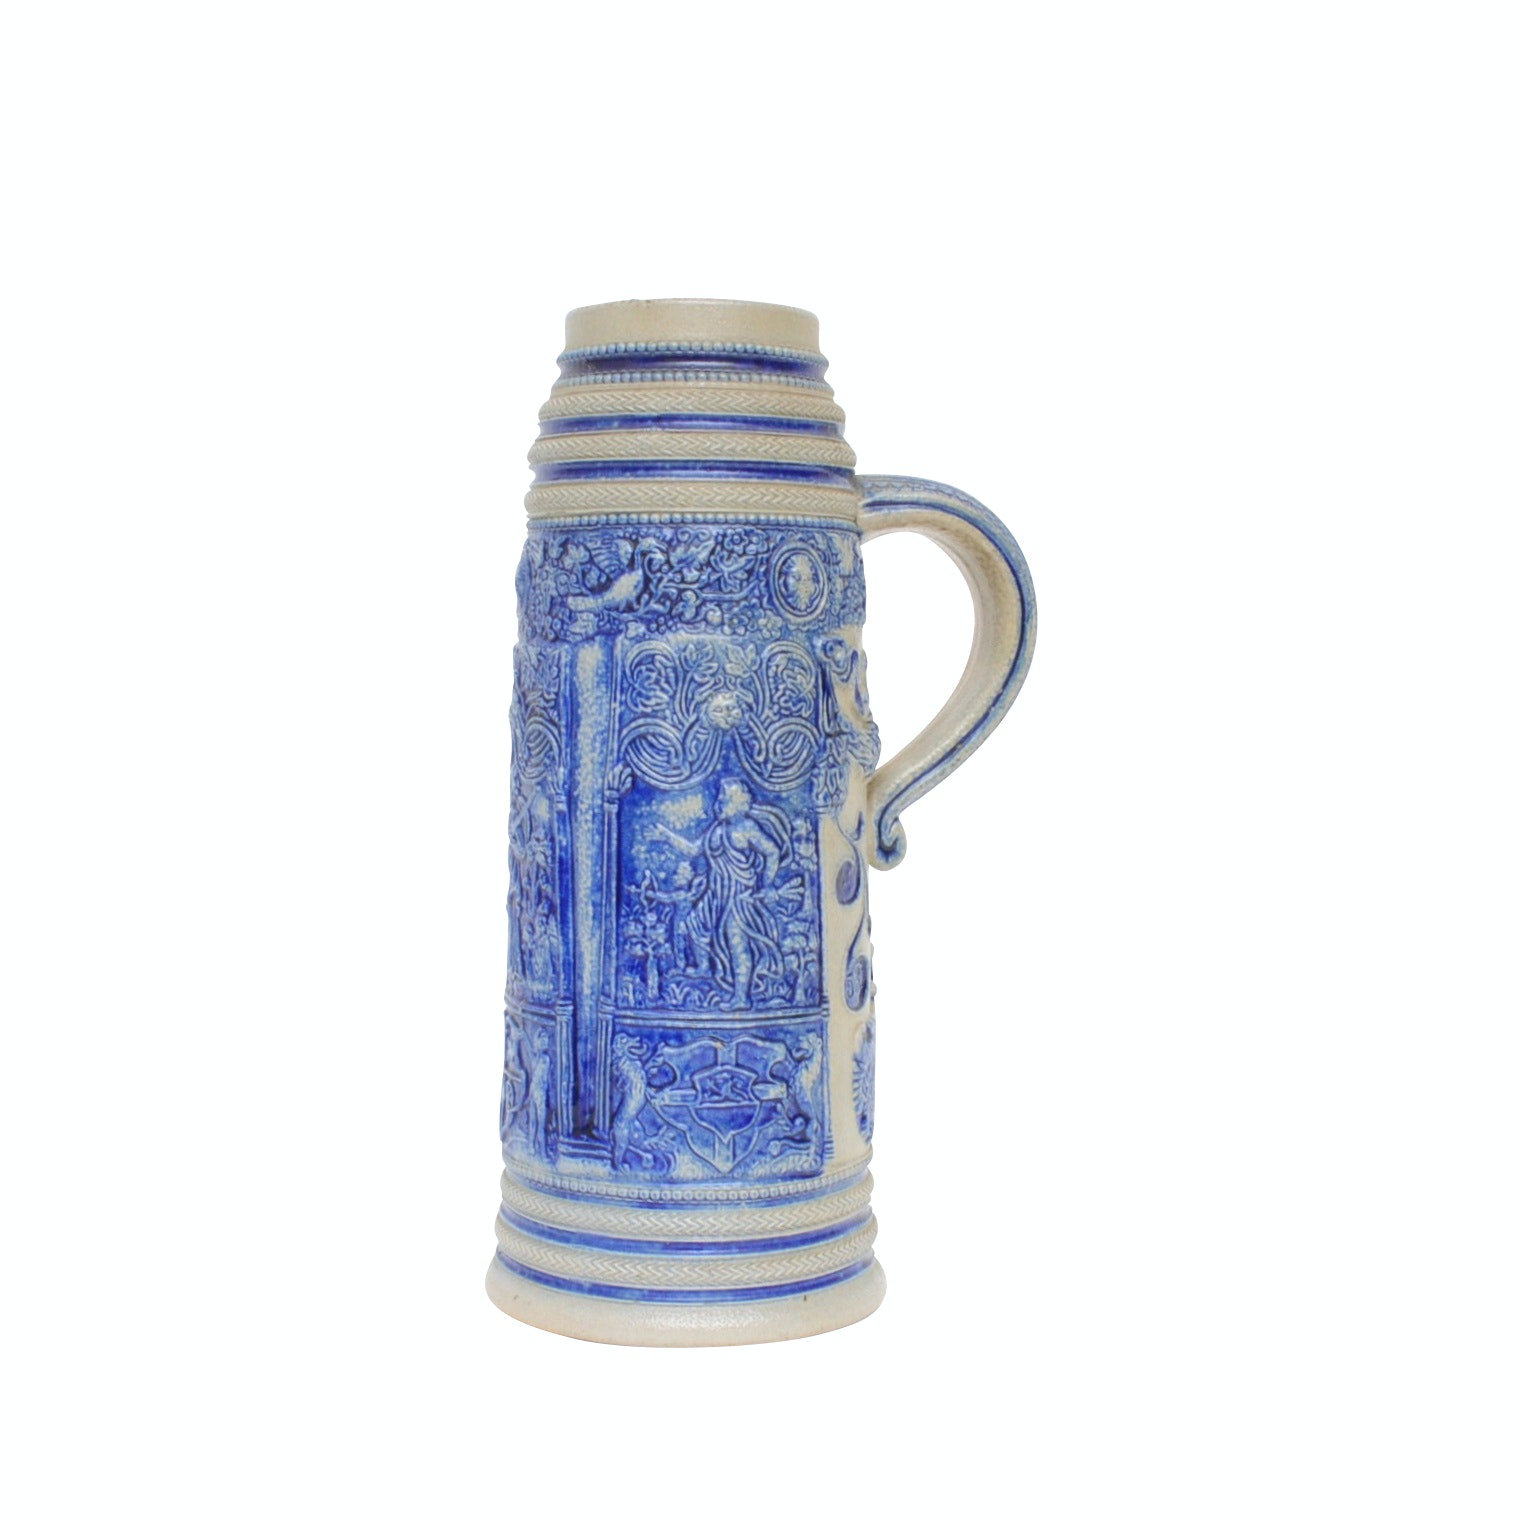 Blue and White German Embossed Figural Stoneware Stein